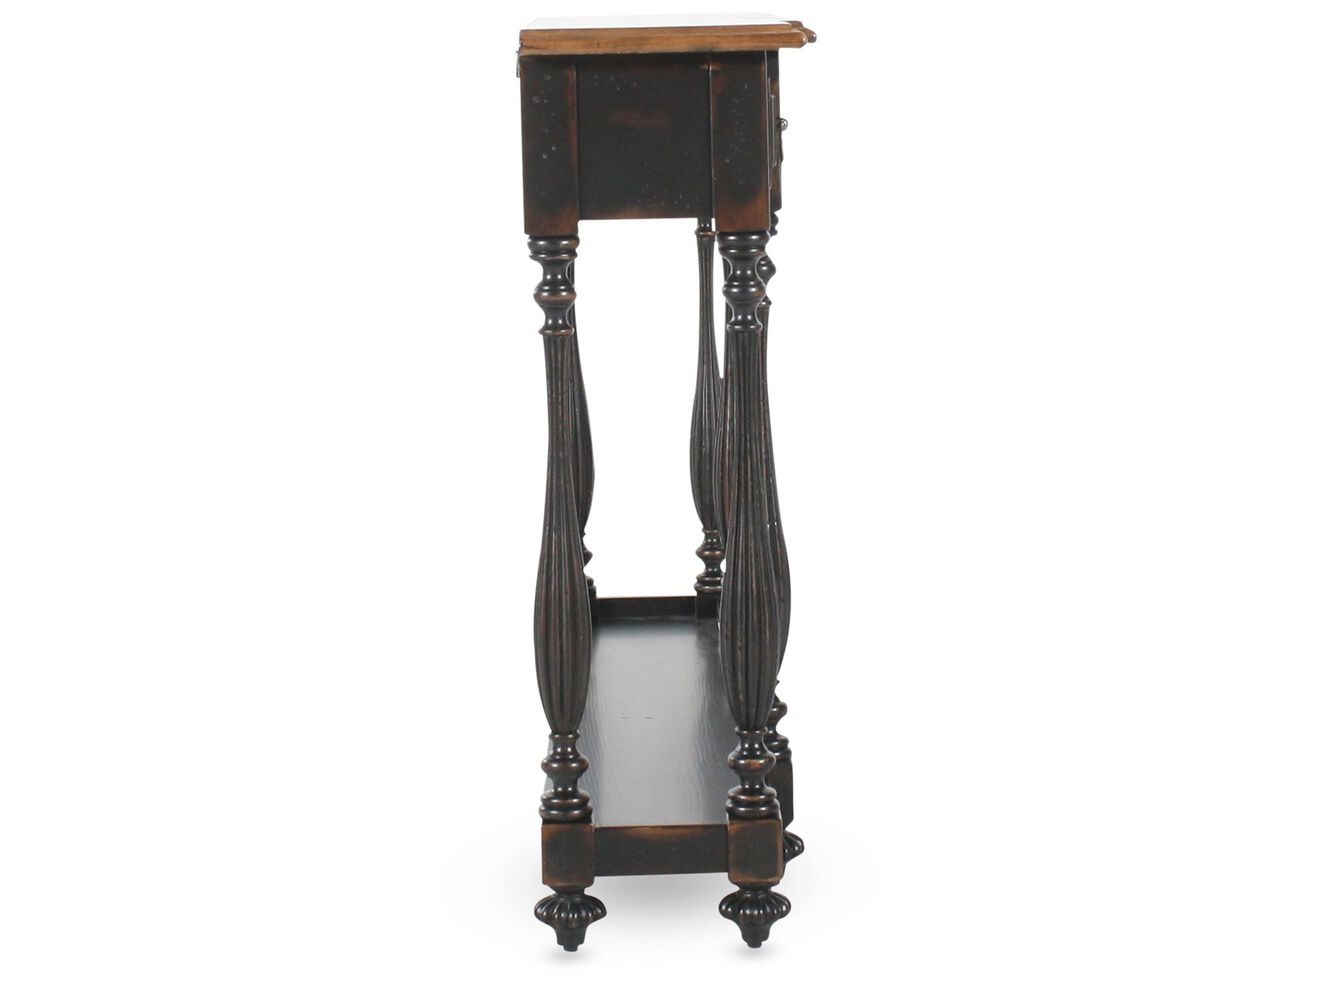 Turned legs country console table in ebony mathis brothers furniture turned legs country console table in ebony geotapseo Image collections